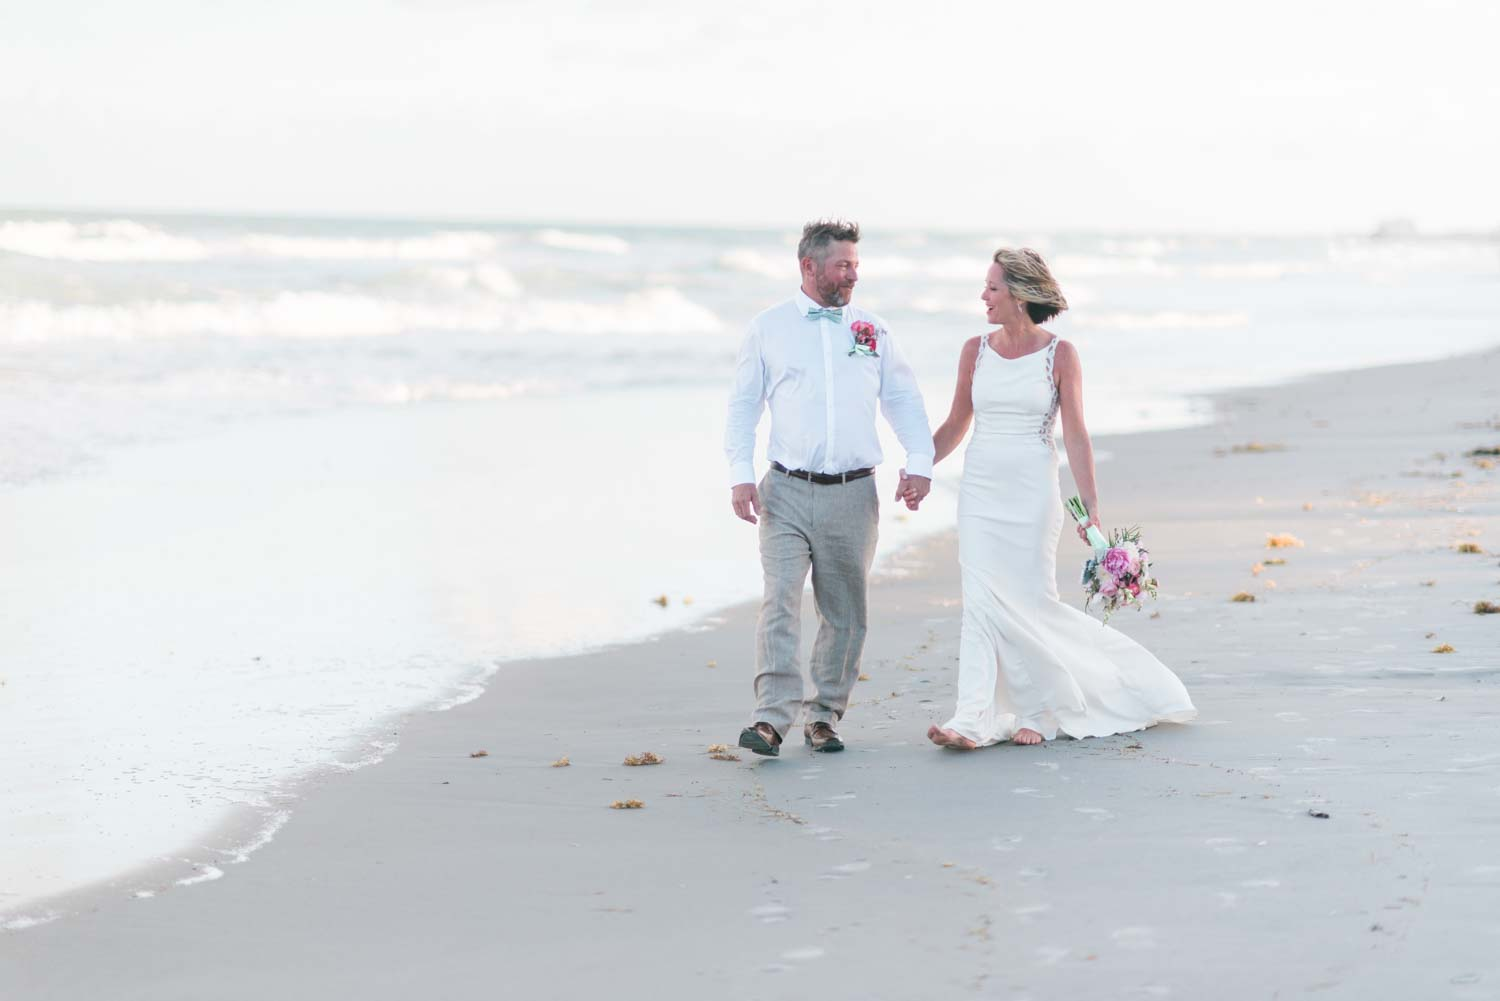 Cape Canaveral Beach Wedding Photographer - Rania Marie Photography-7.jpg